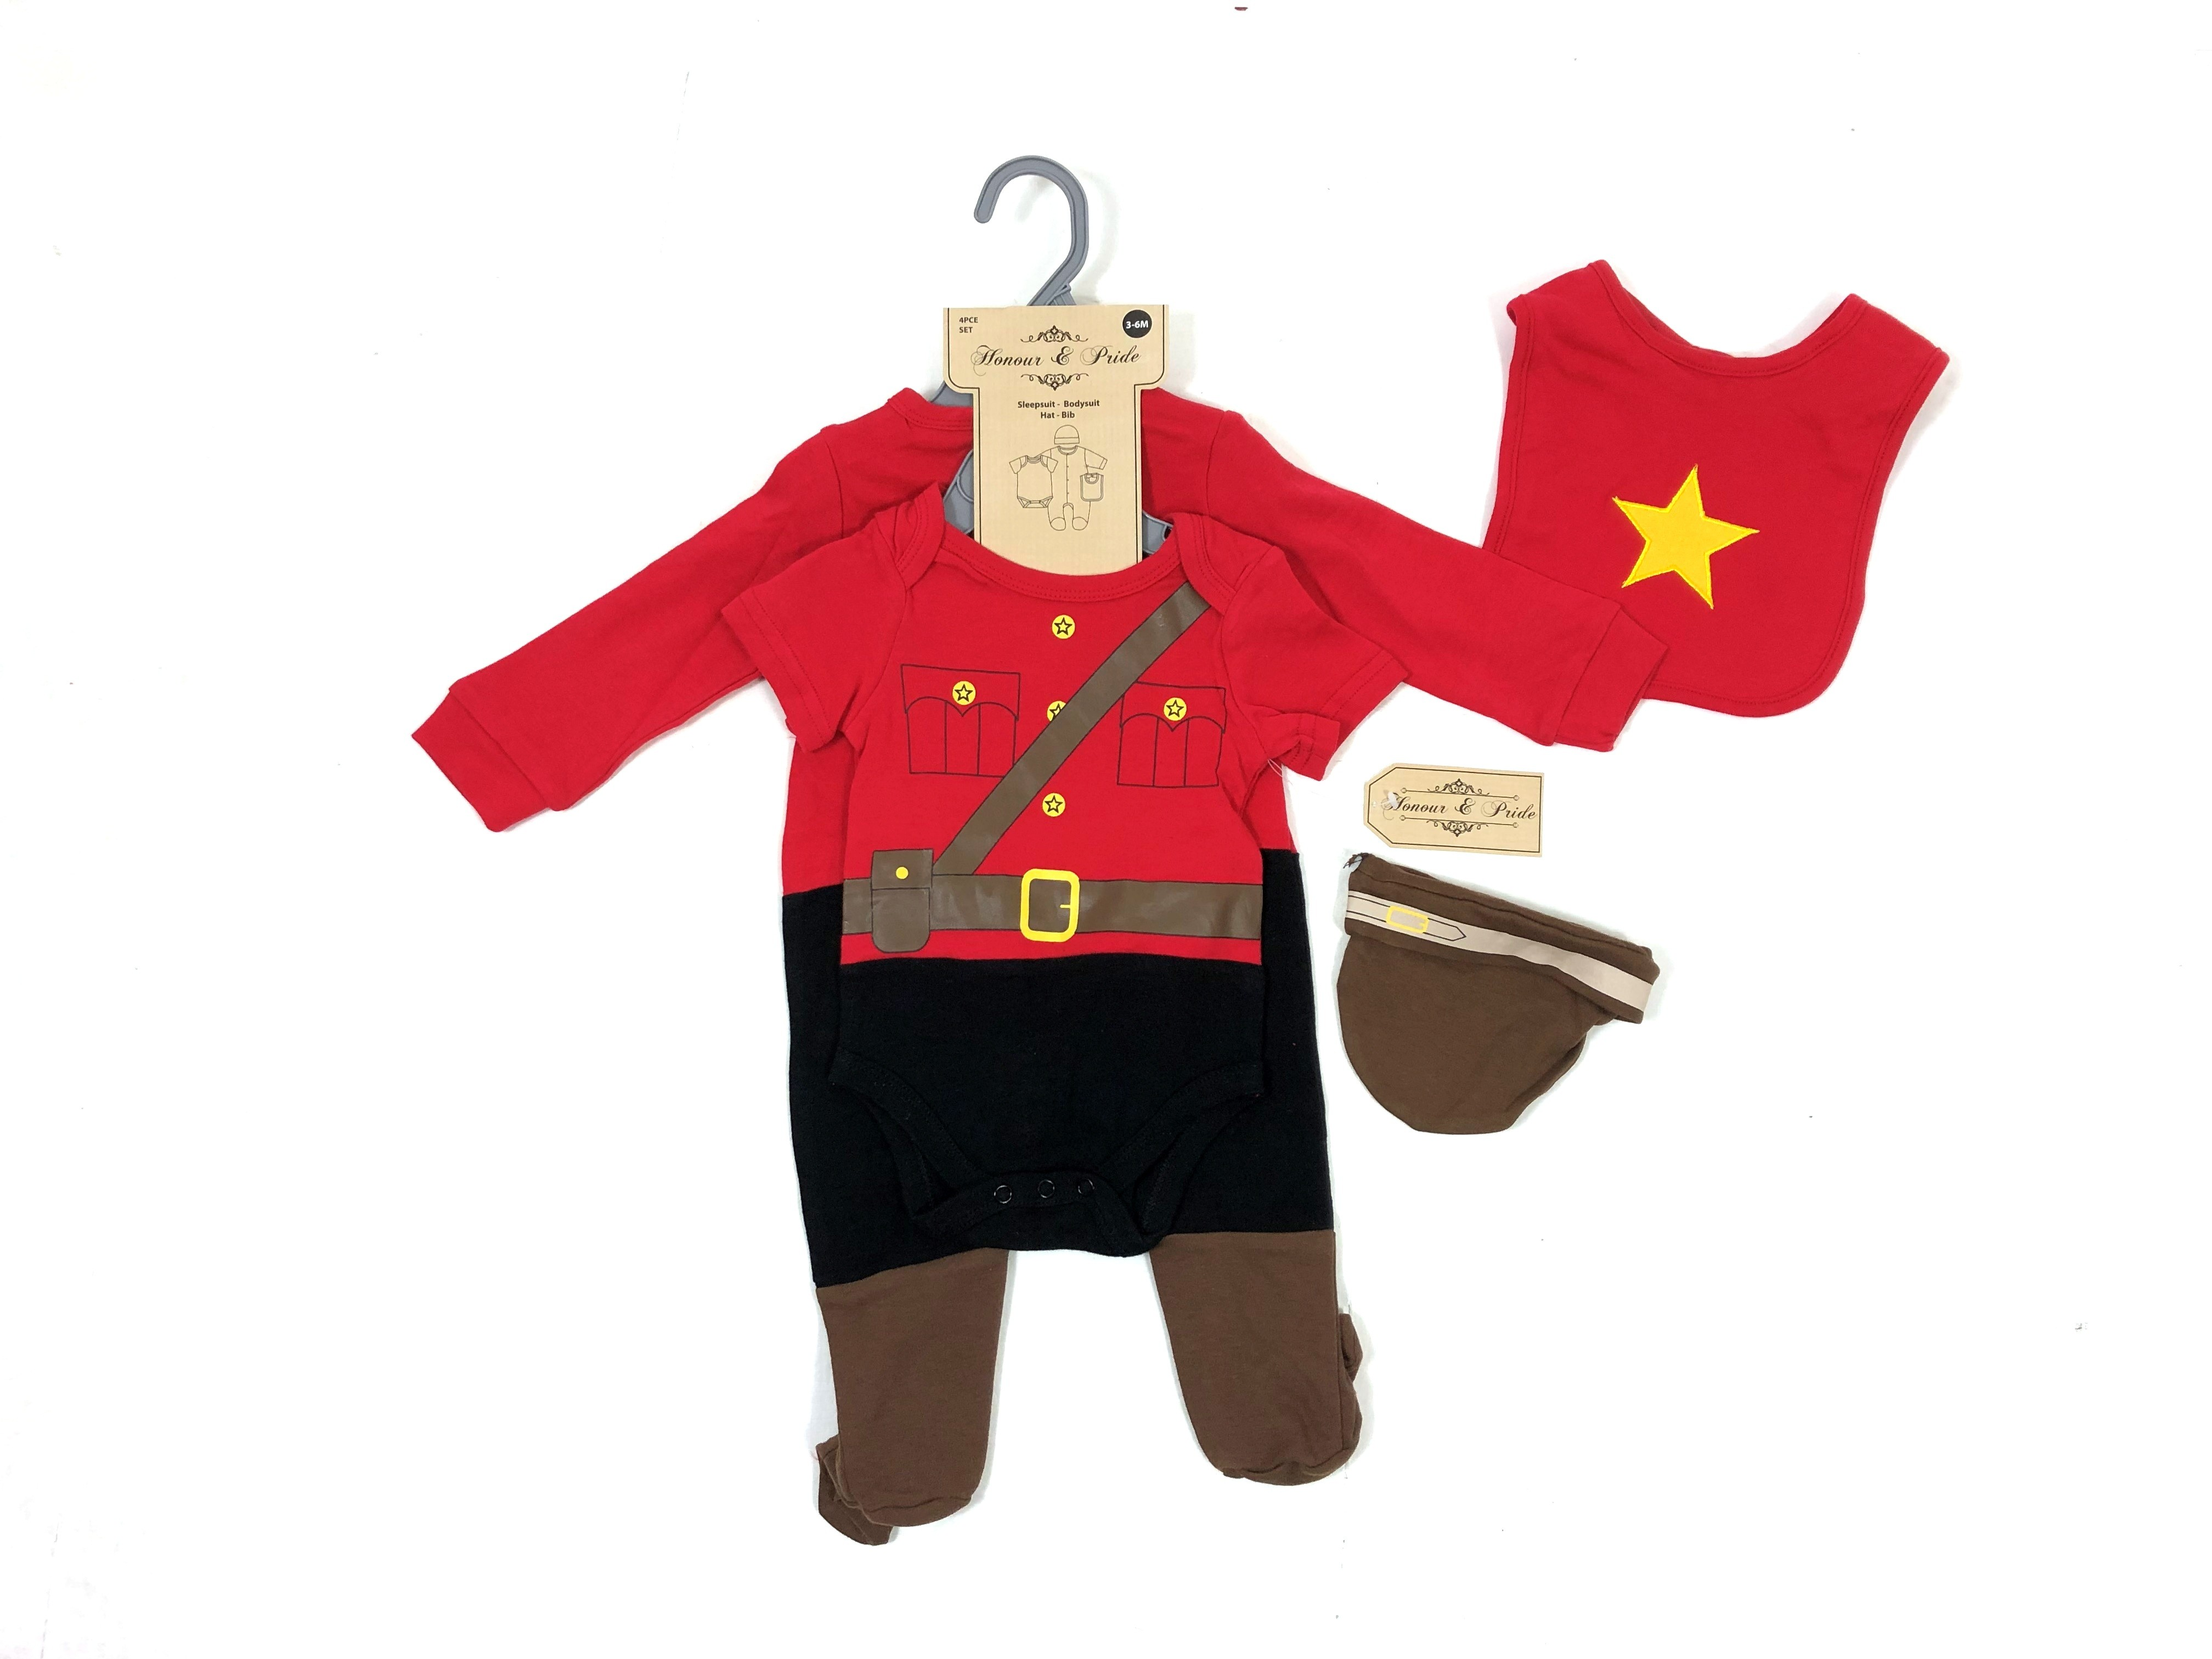 REDUCED PRICE Honour & Pride 'Canadian Mount Police' Baby Boys 4 Pieces Set PACK OF 6